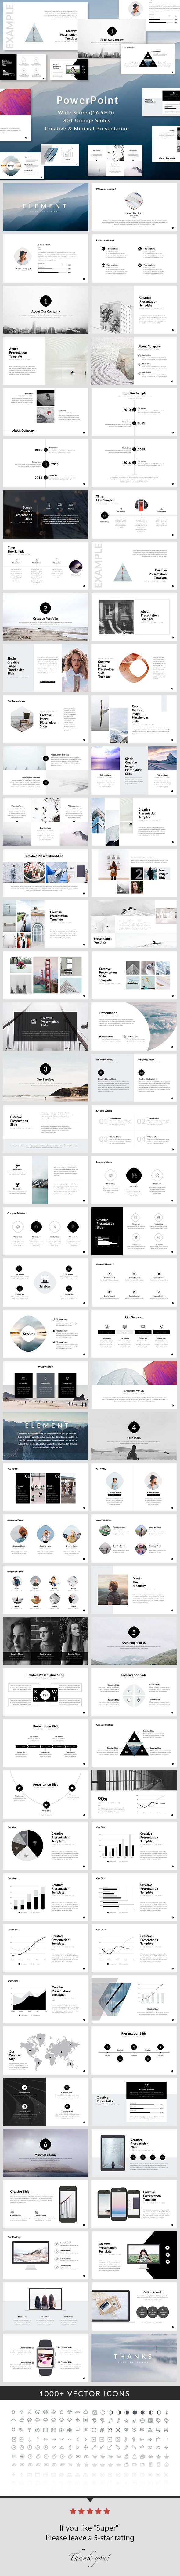 Element - PowerPoint Presentation Template - Creative PowerPoint Templates